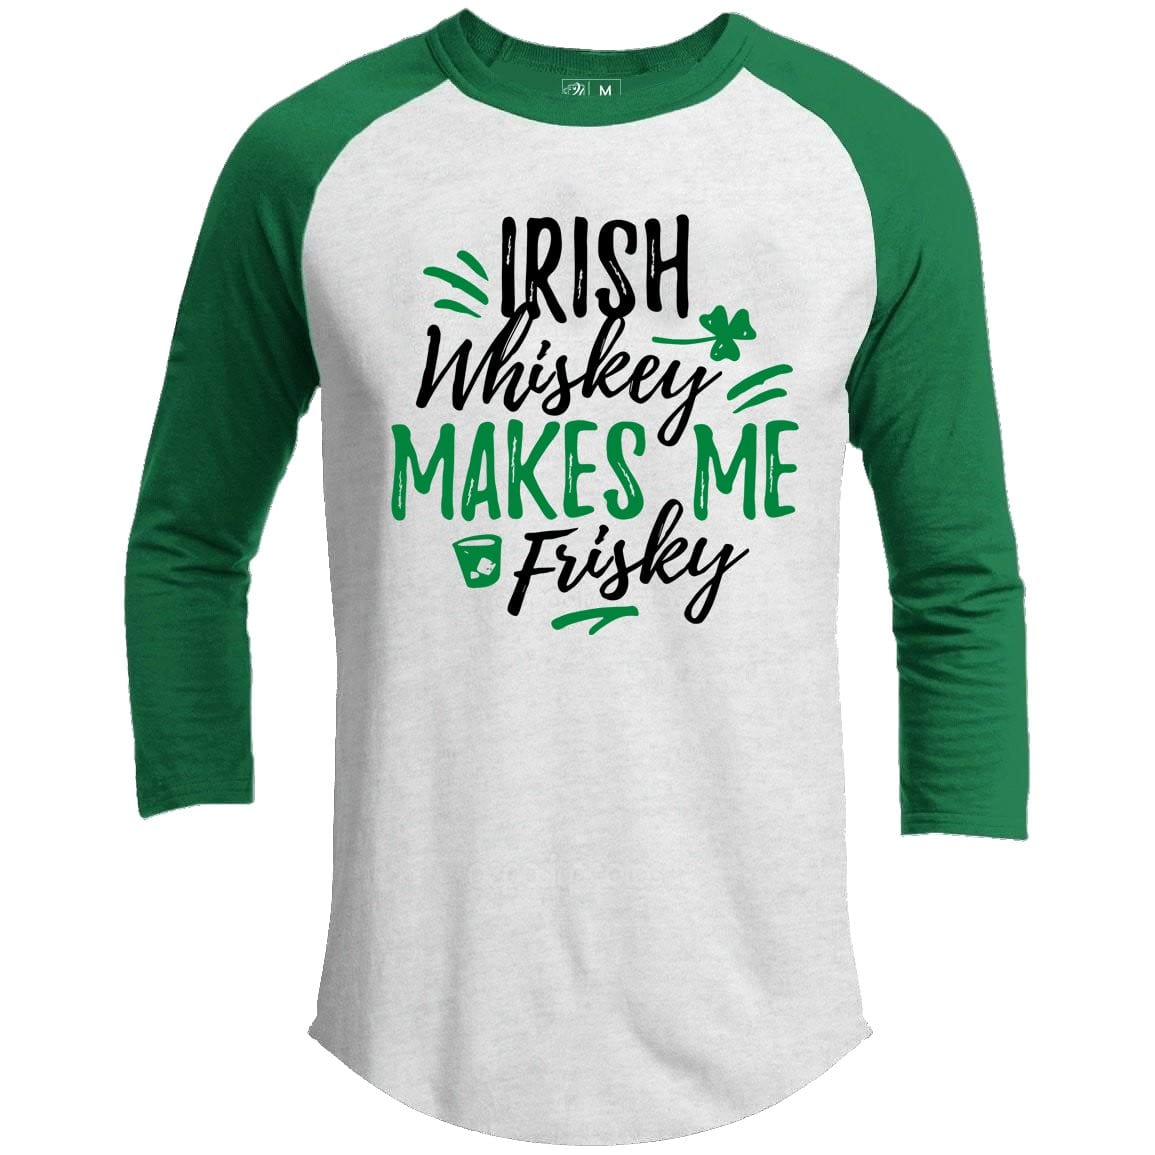 Irish Whiskey Makes Me Frisky St. Patrick's Day Raglan